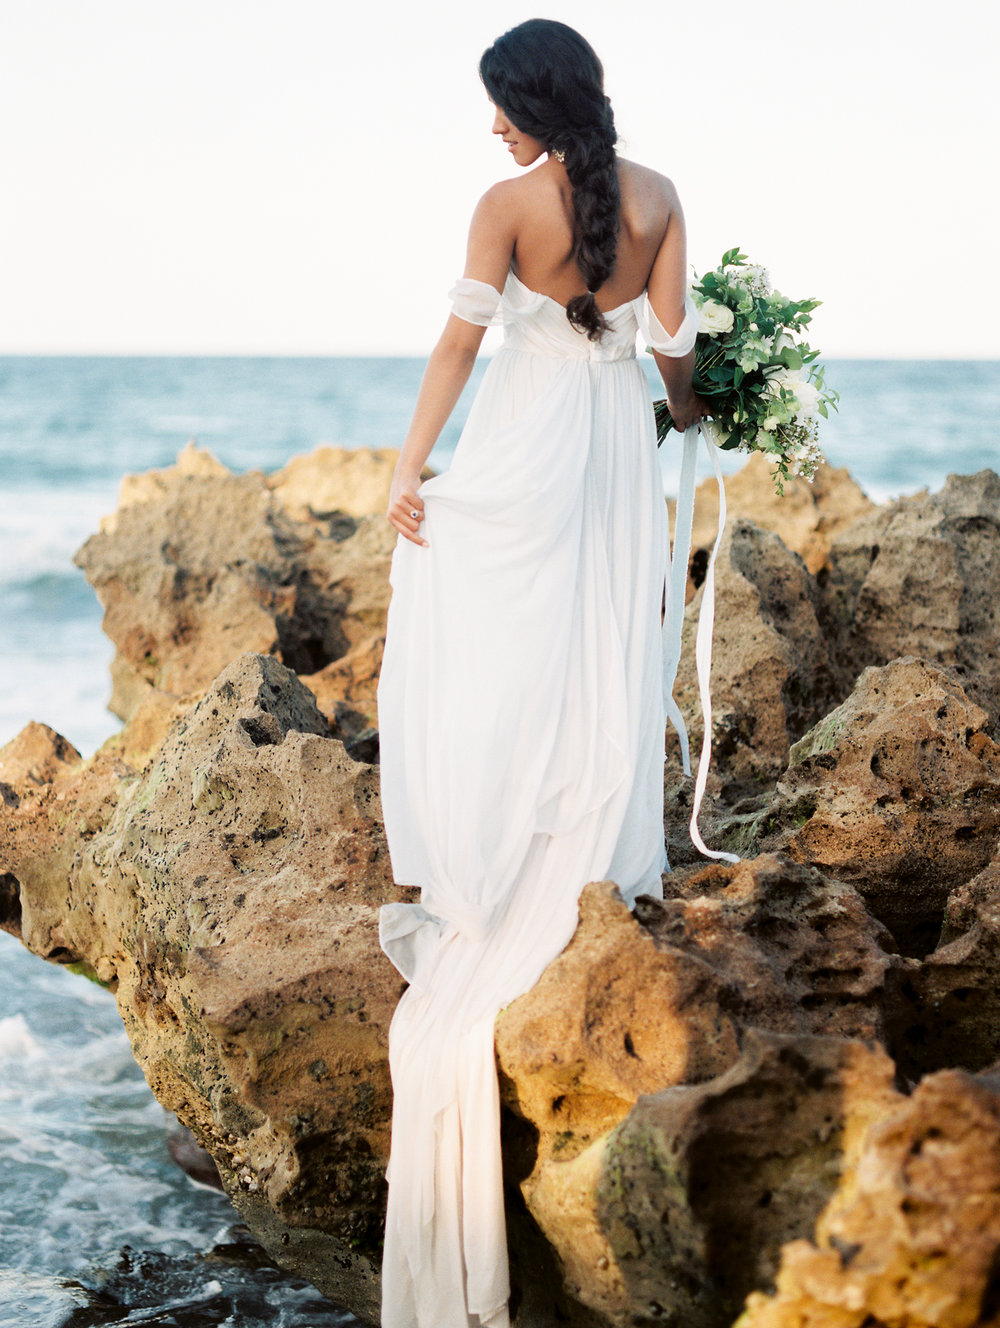 coral cove, jupiter beach FL, palm beach wedding photos, wedding dress on bride photos